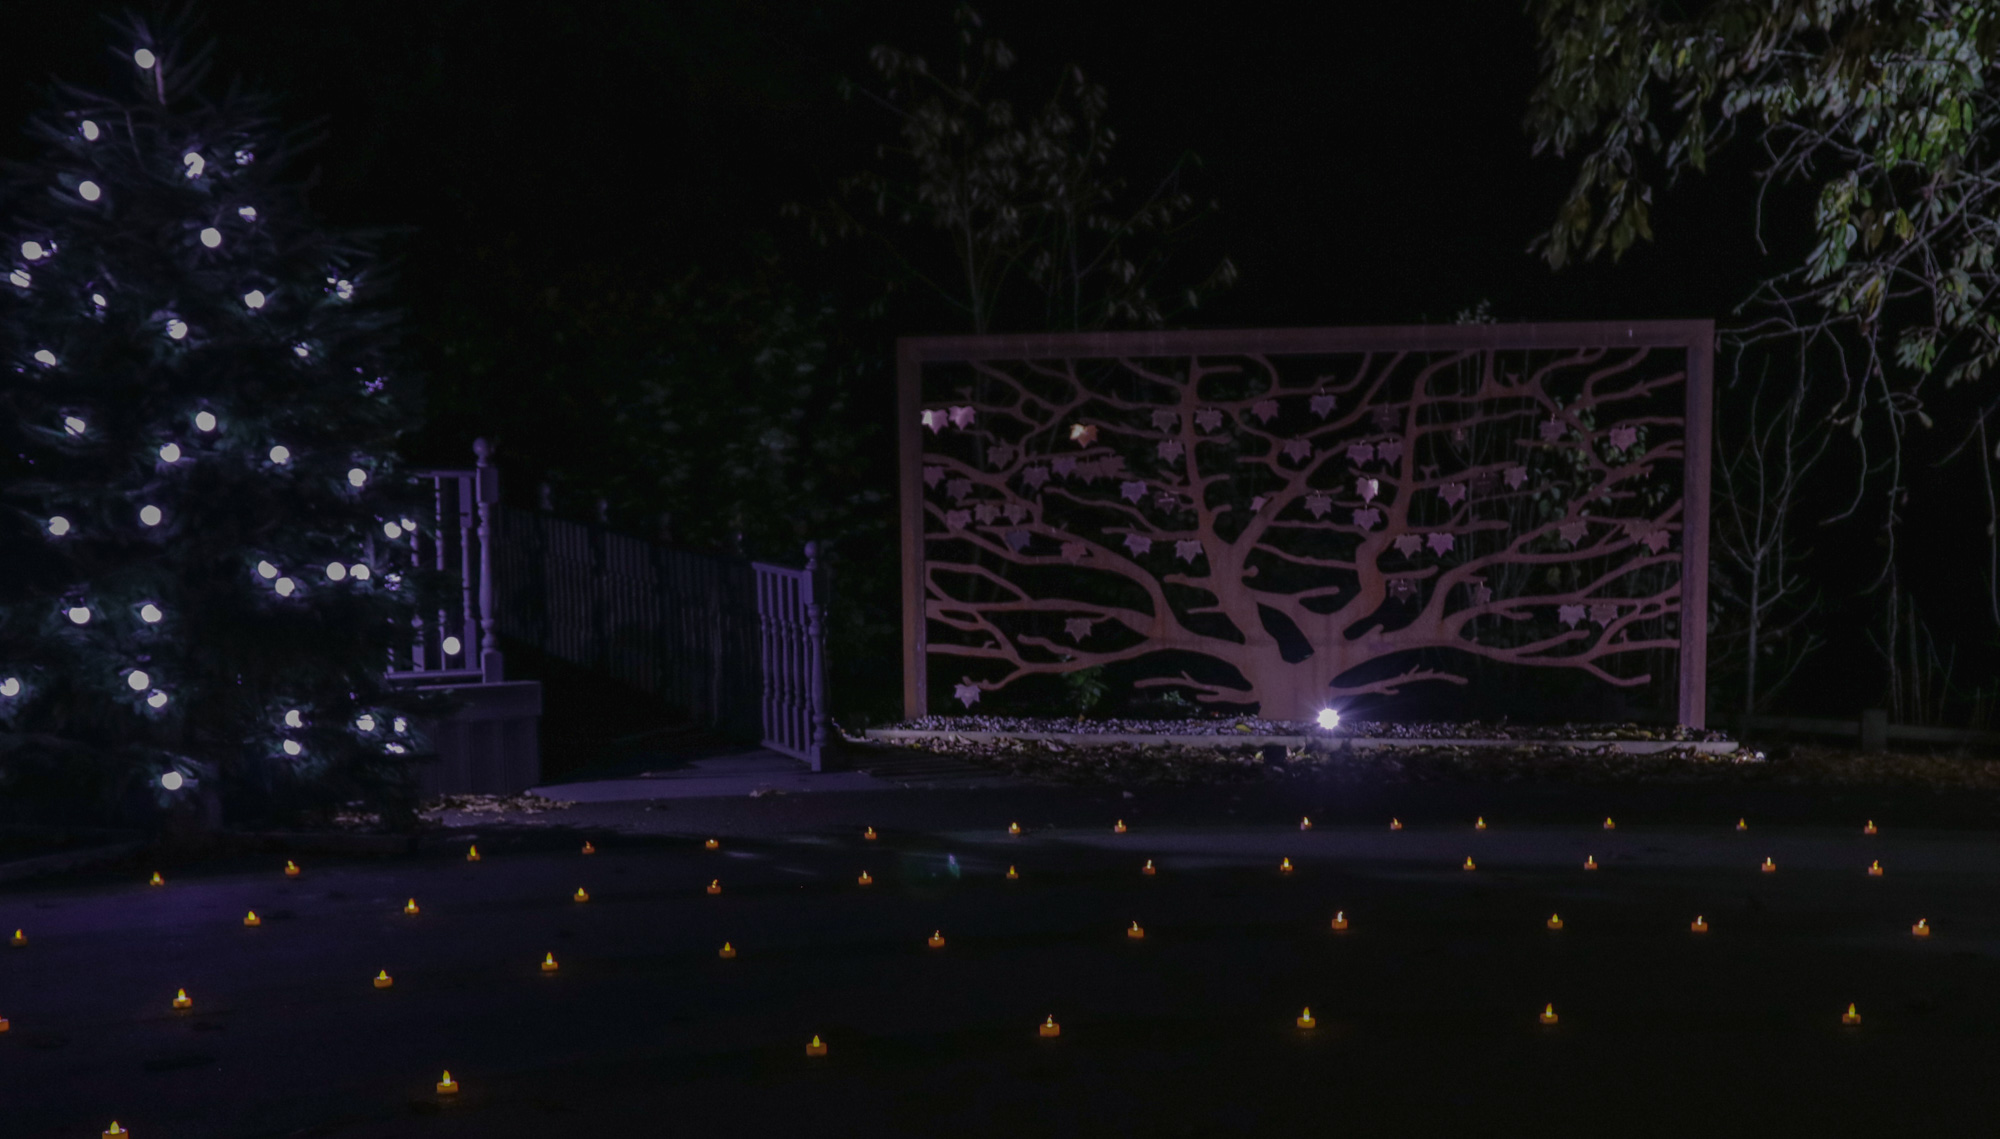 Memory Orchard in the night